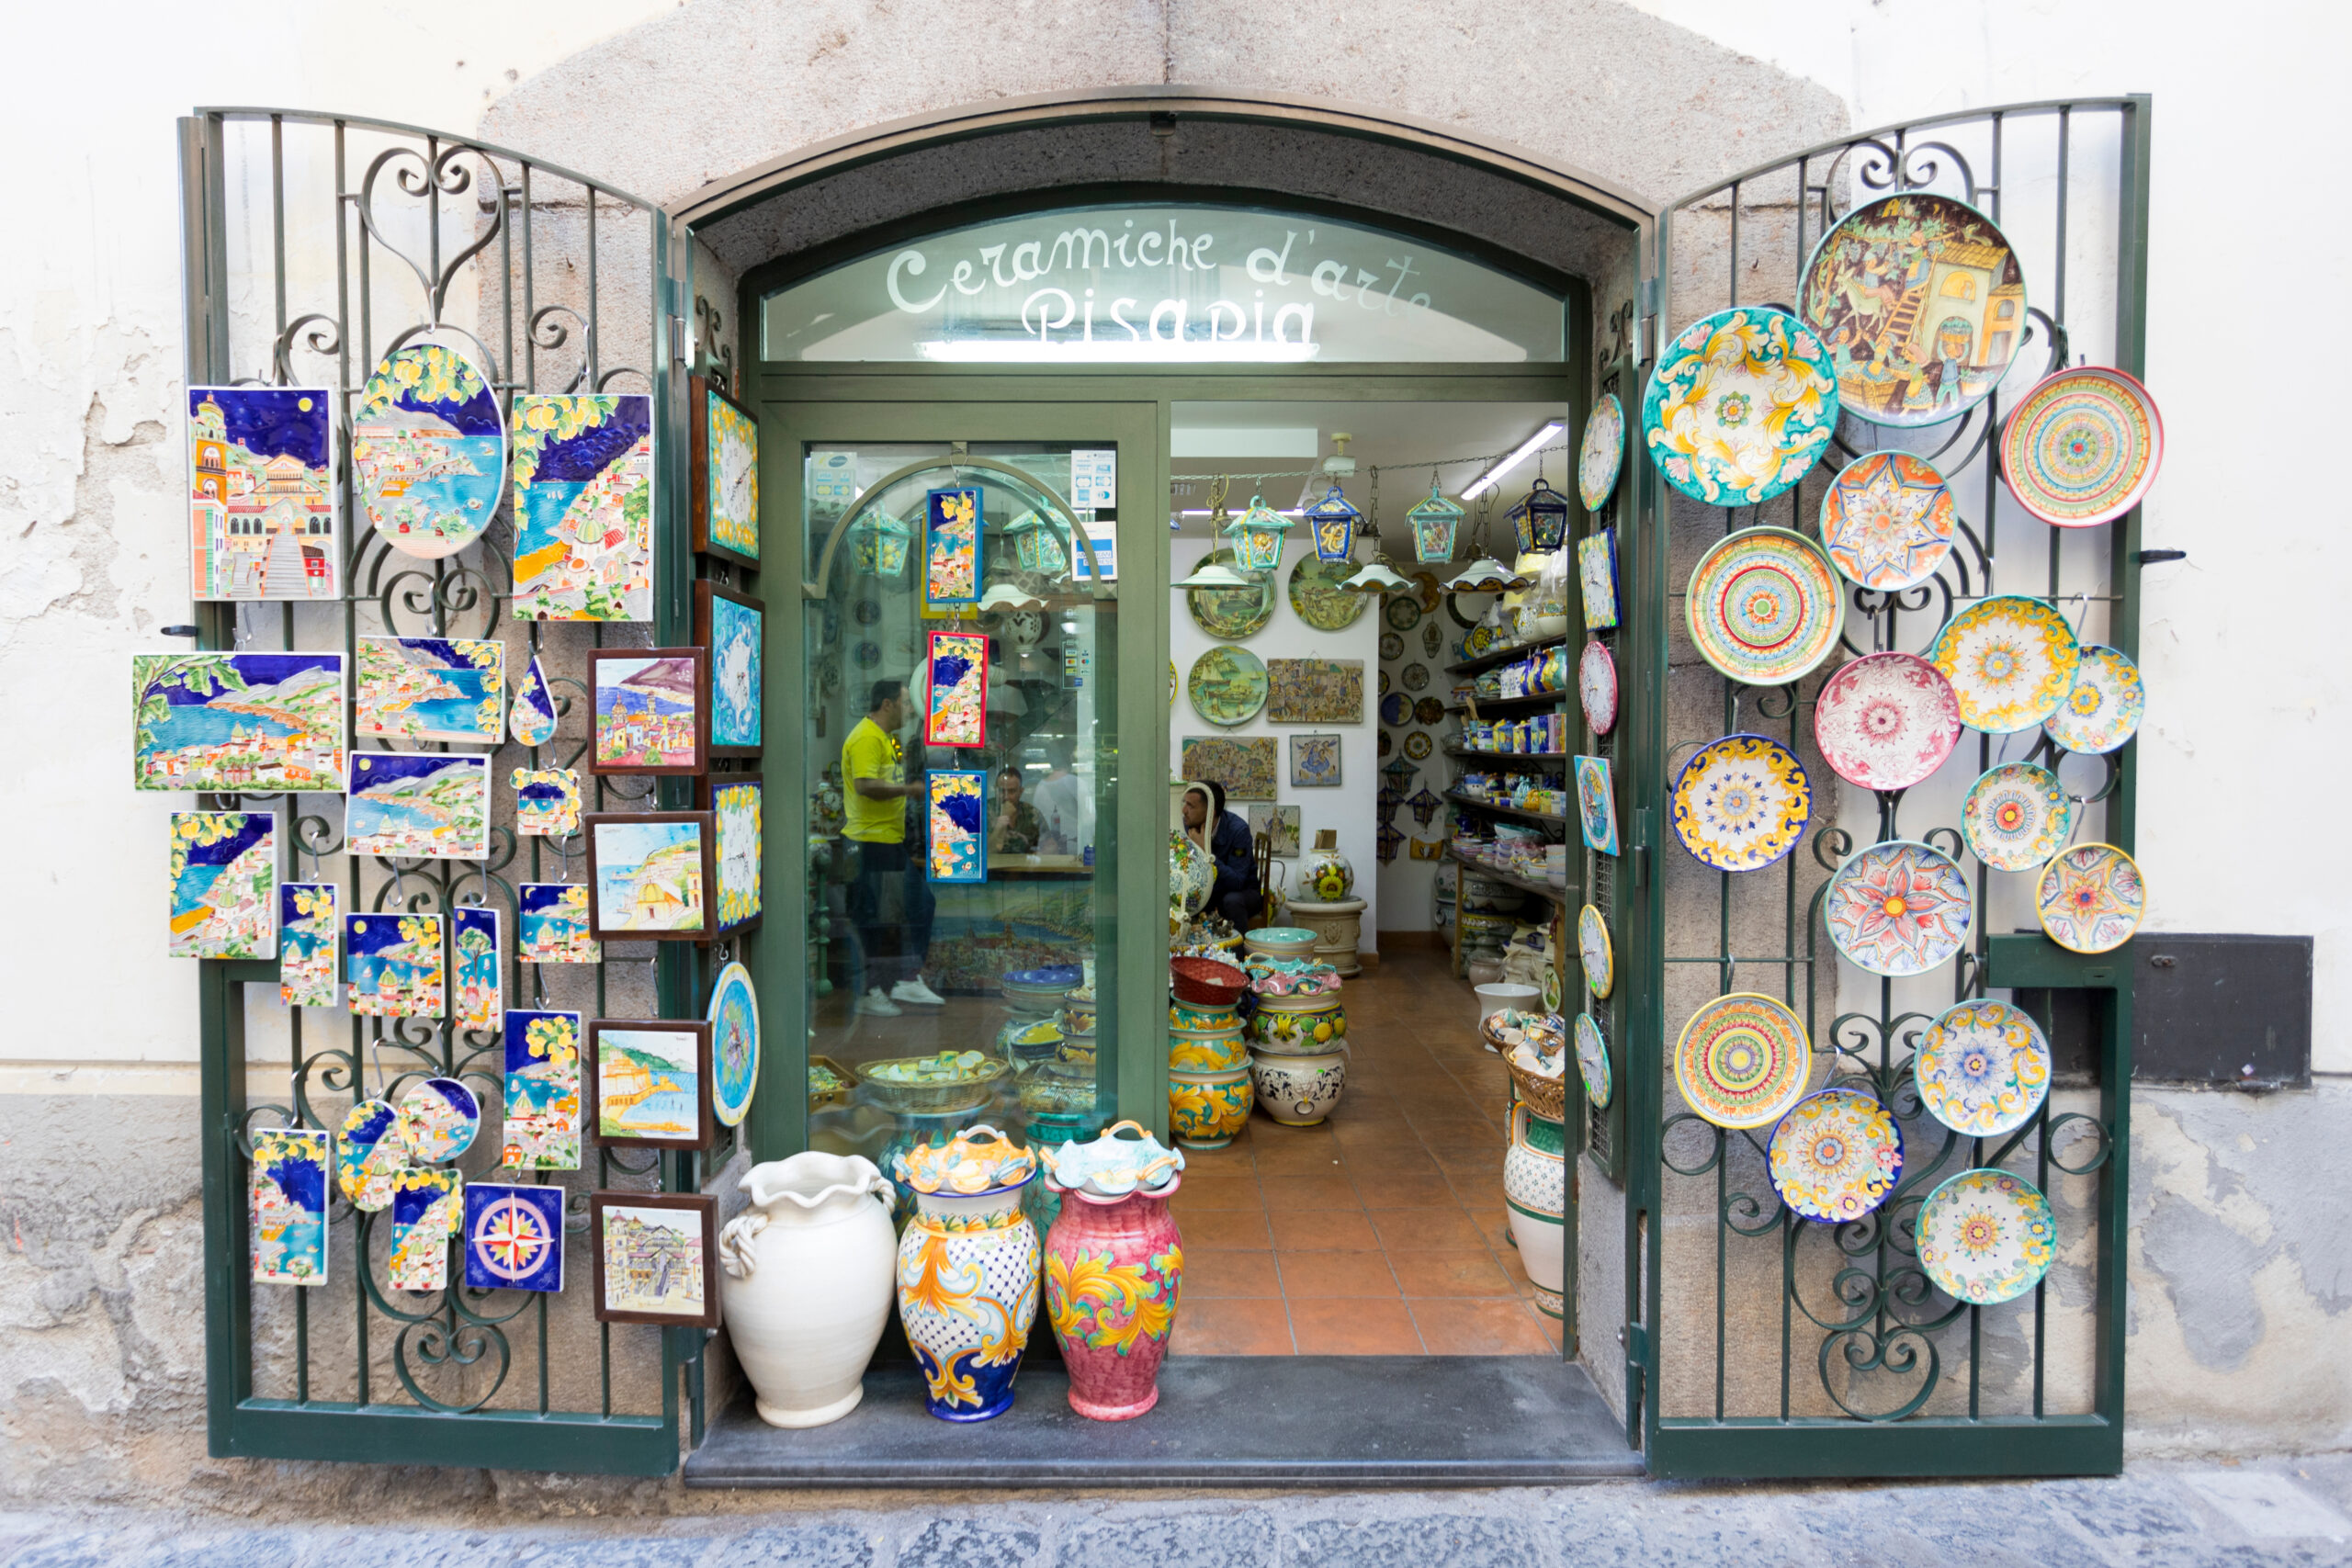 Photo of majolica ceramics found in Vietri sul Mare, one of the best Amalfi Coast beaches for unique souvenirs. Plates, wall hangings, and vases are being displayed in a store front.